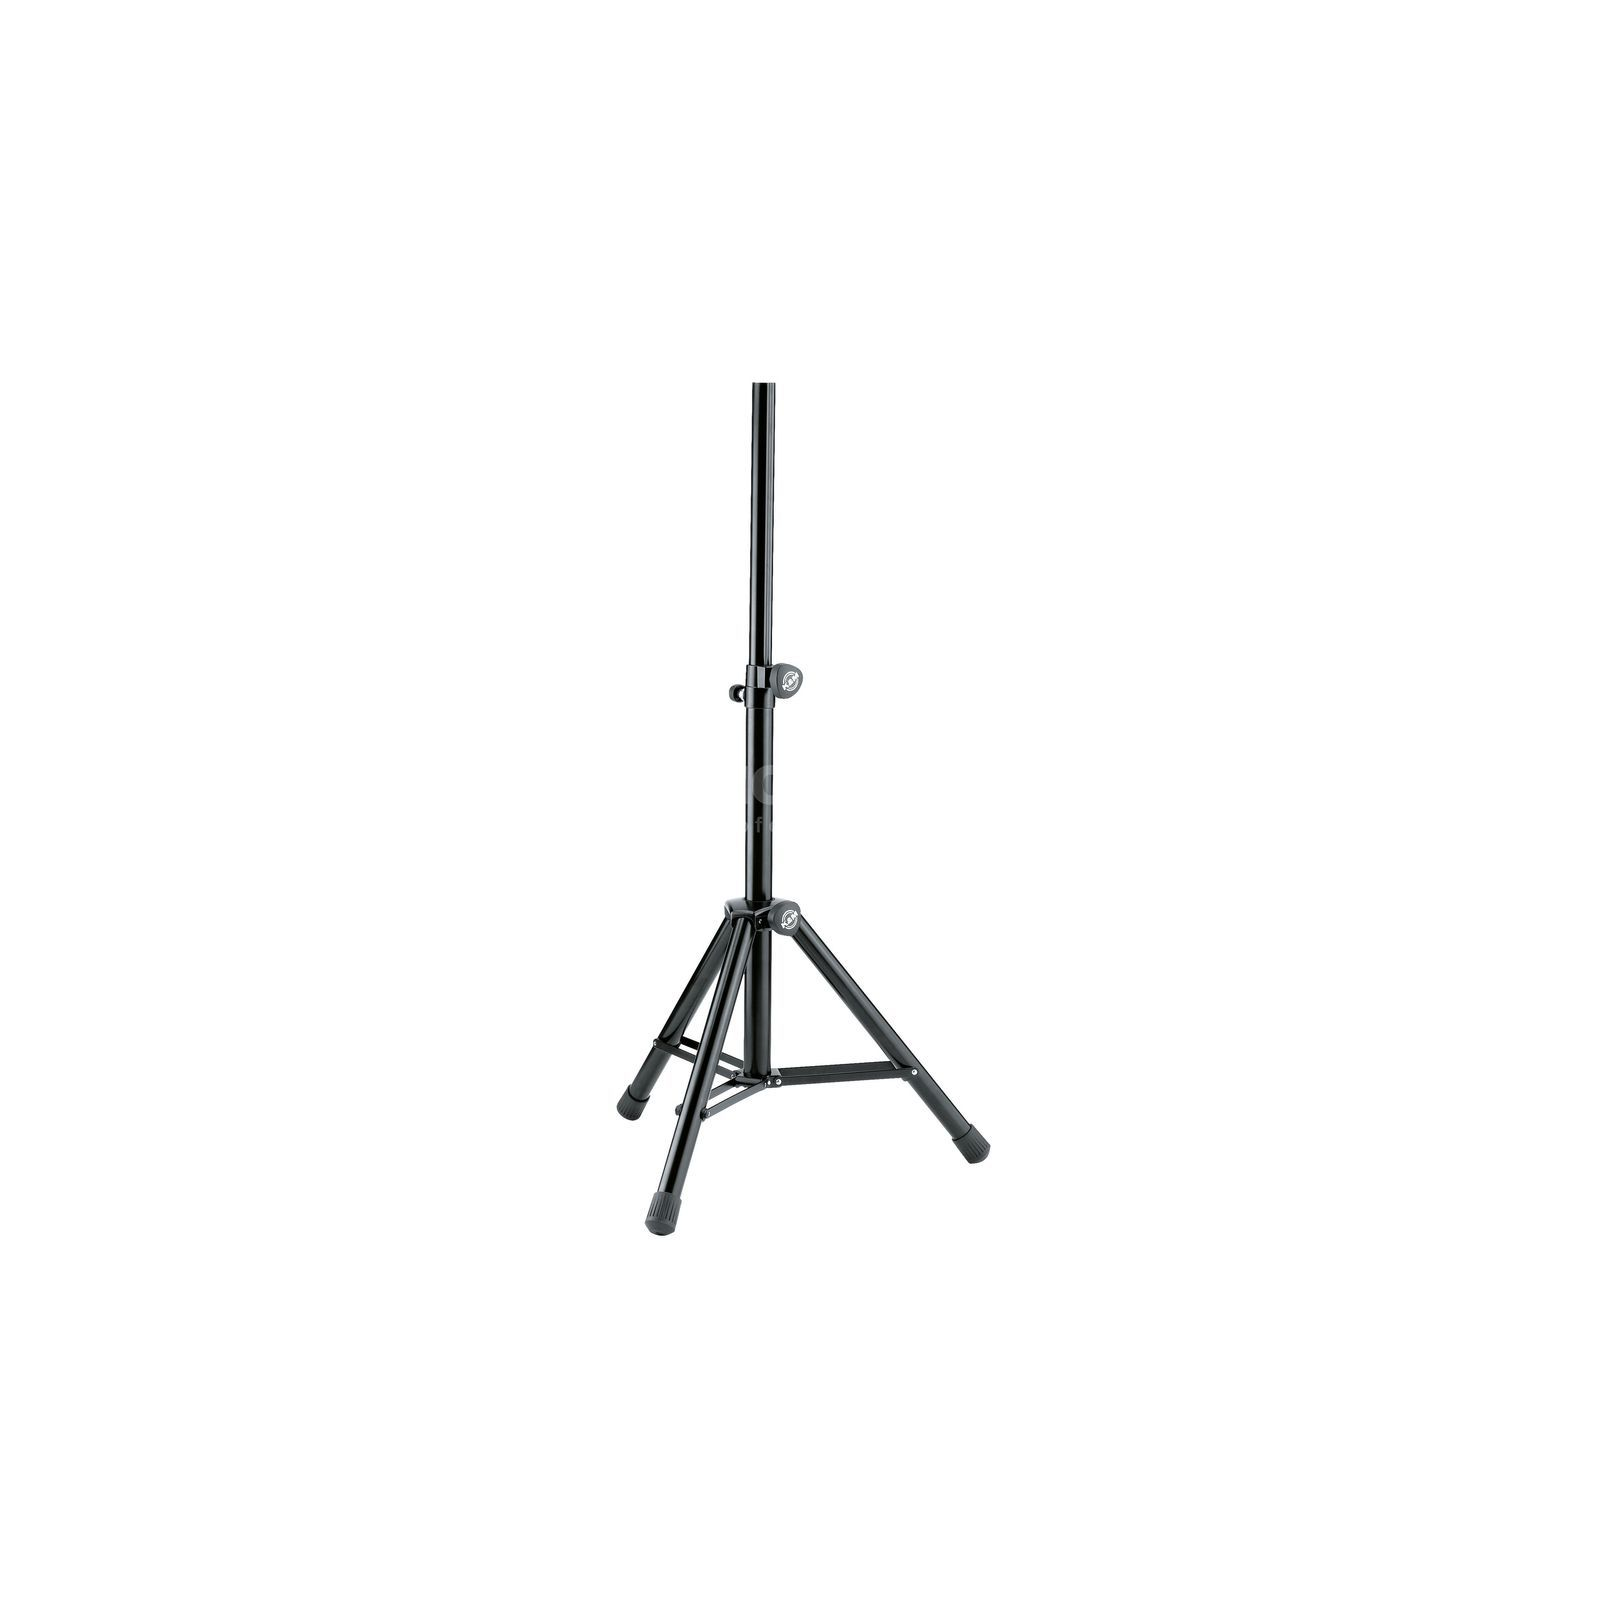 König & Meyer 21455 Box Stand black Height: 1005/1545 mm Product Image